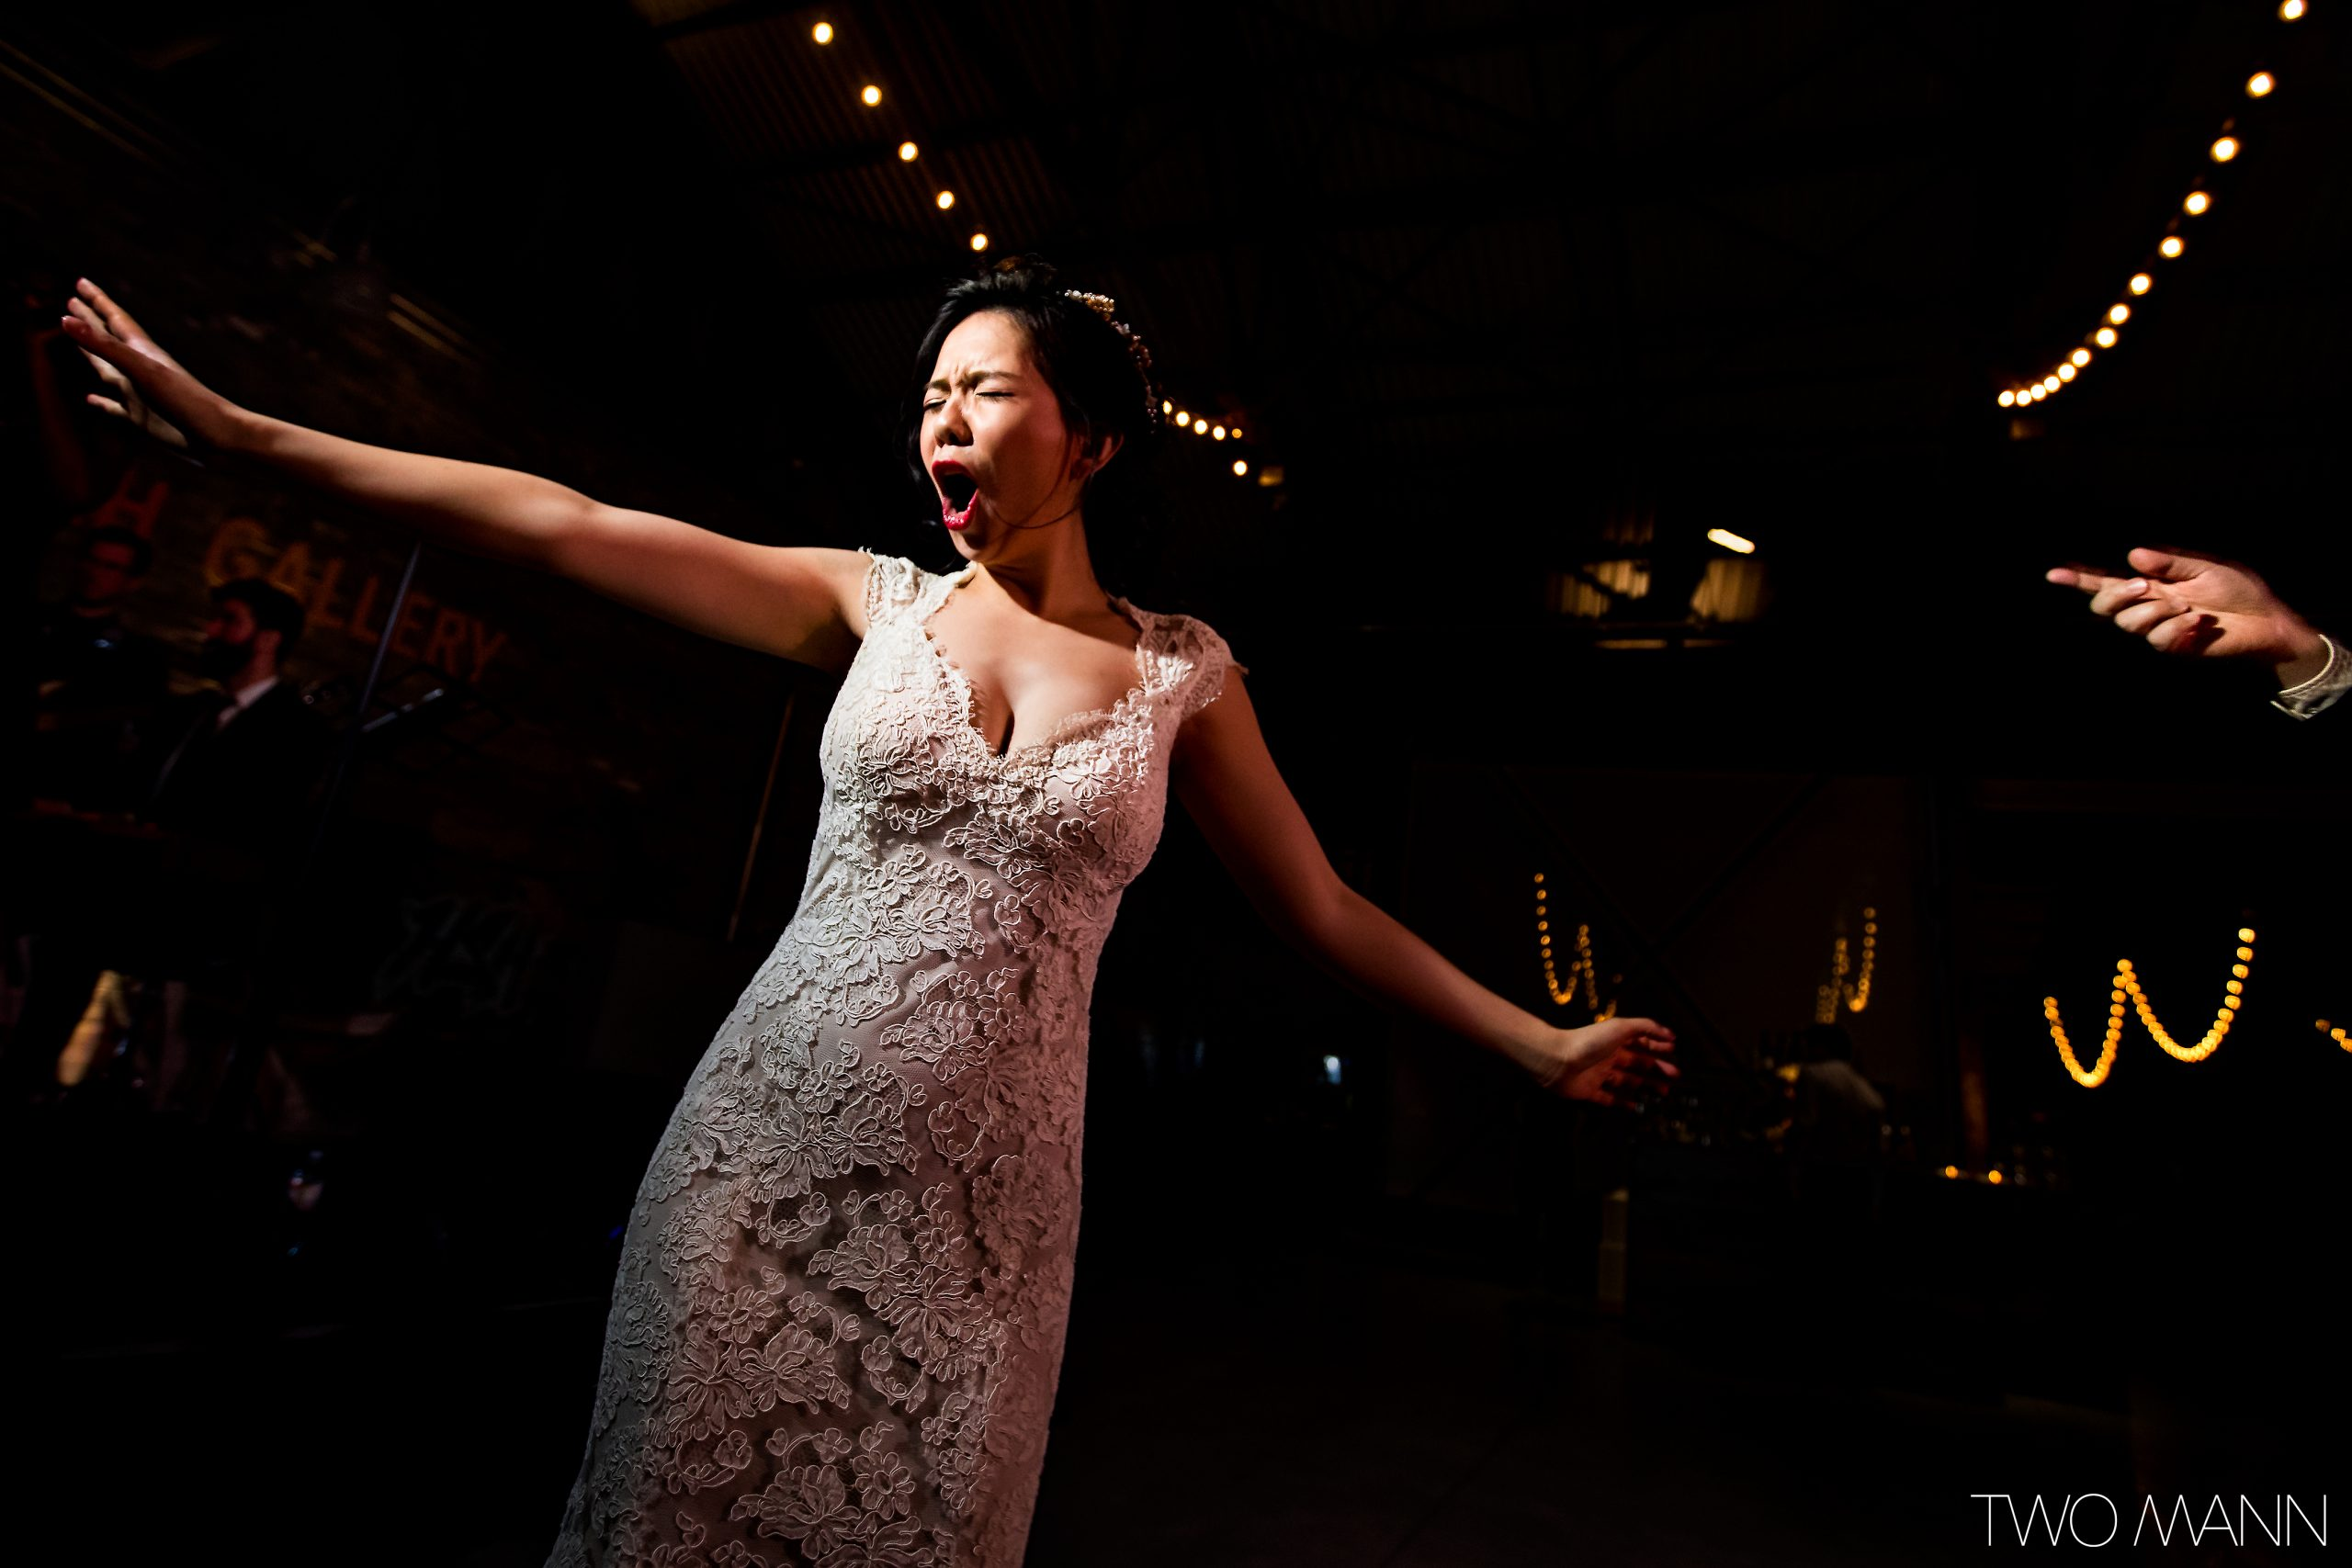 Bride dancing with arms outstretched at wedding reception party